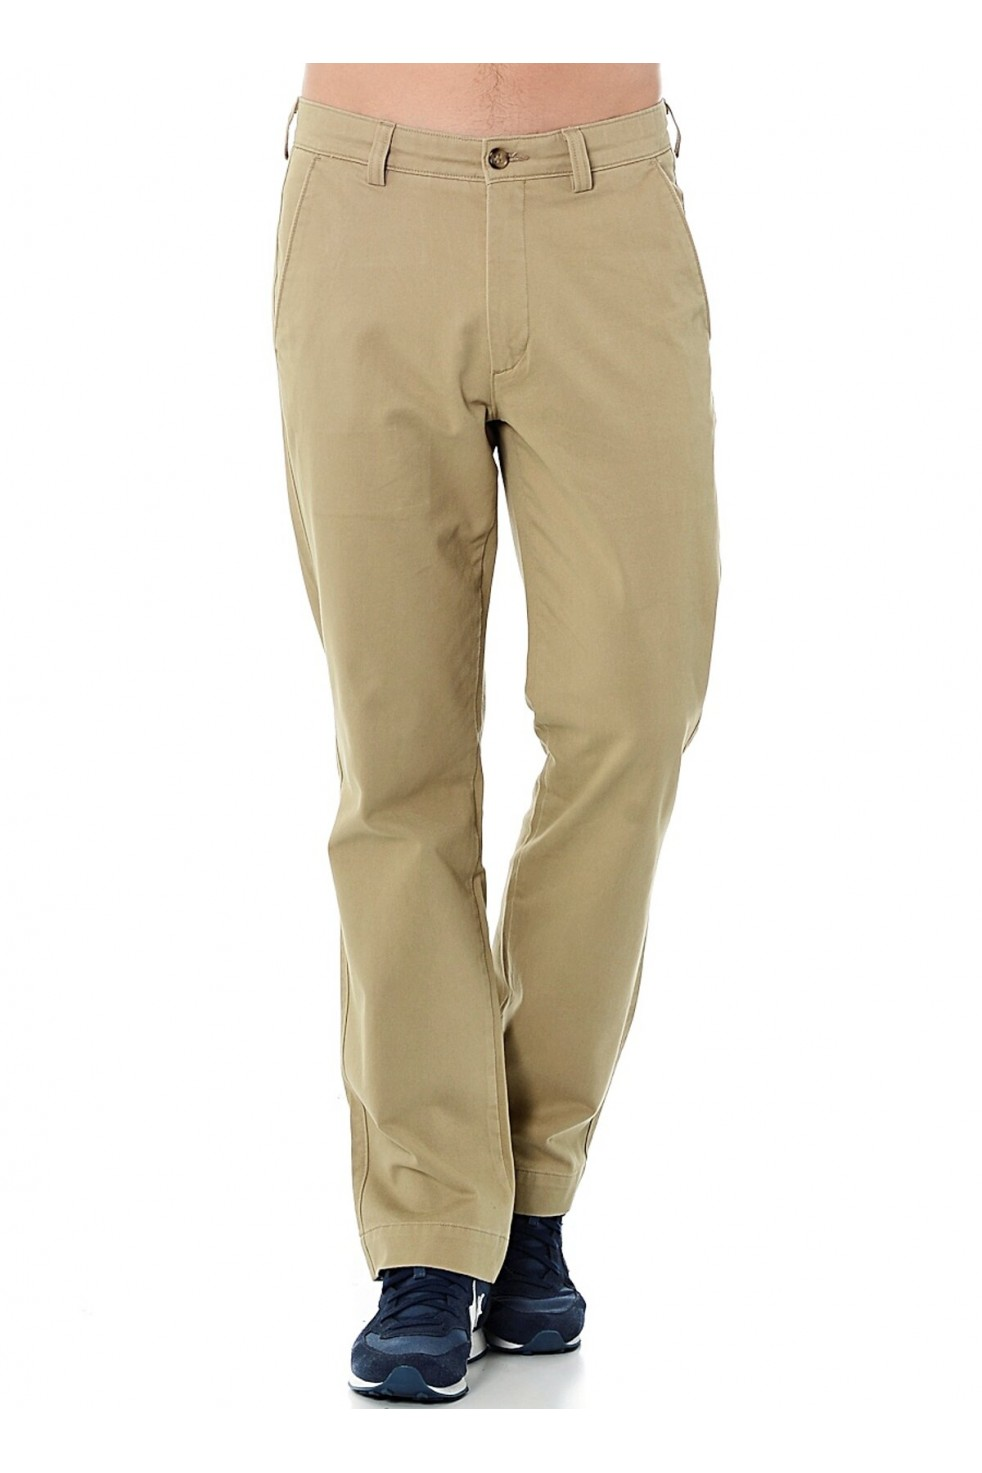 Dockers-Erkek-Pantolon-D1-Slim-Fit-20253-0003